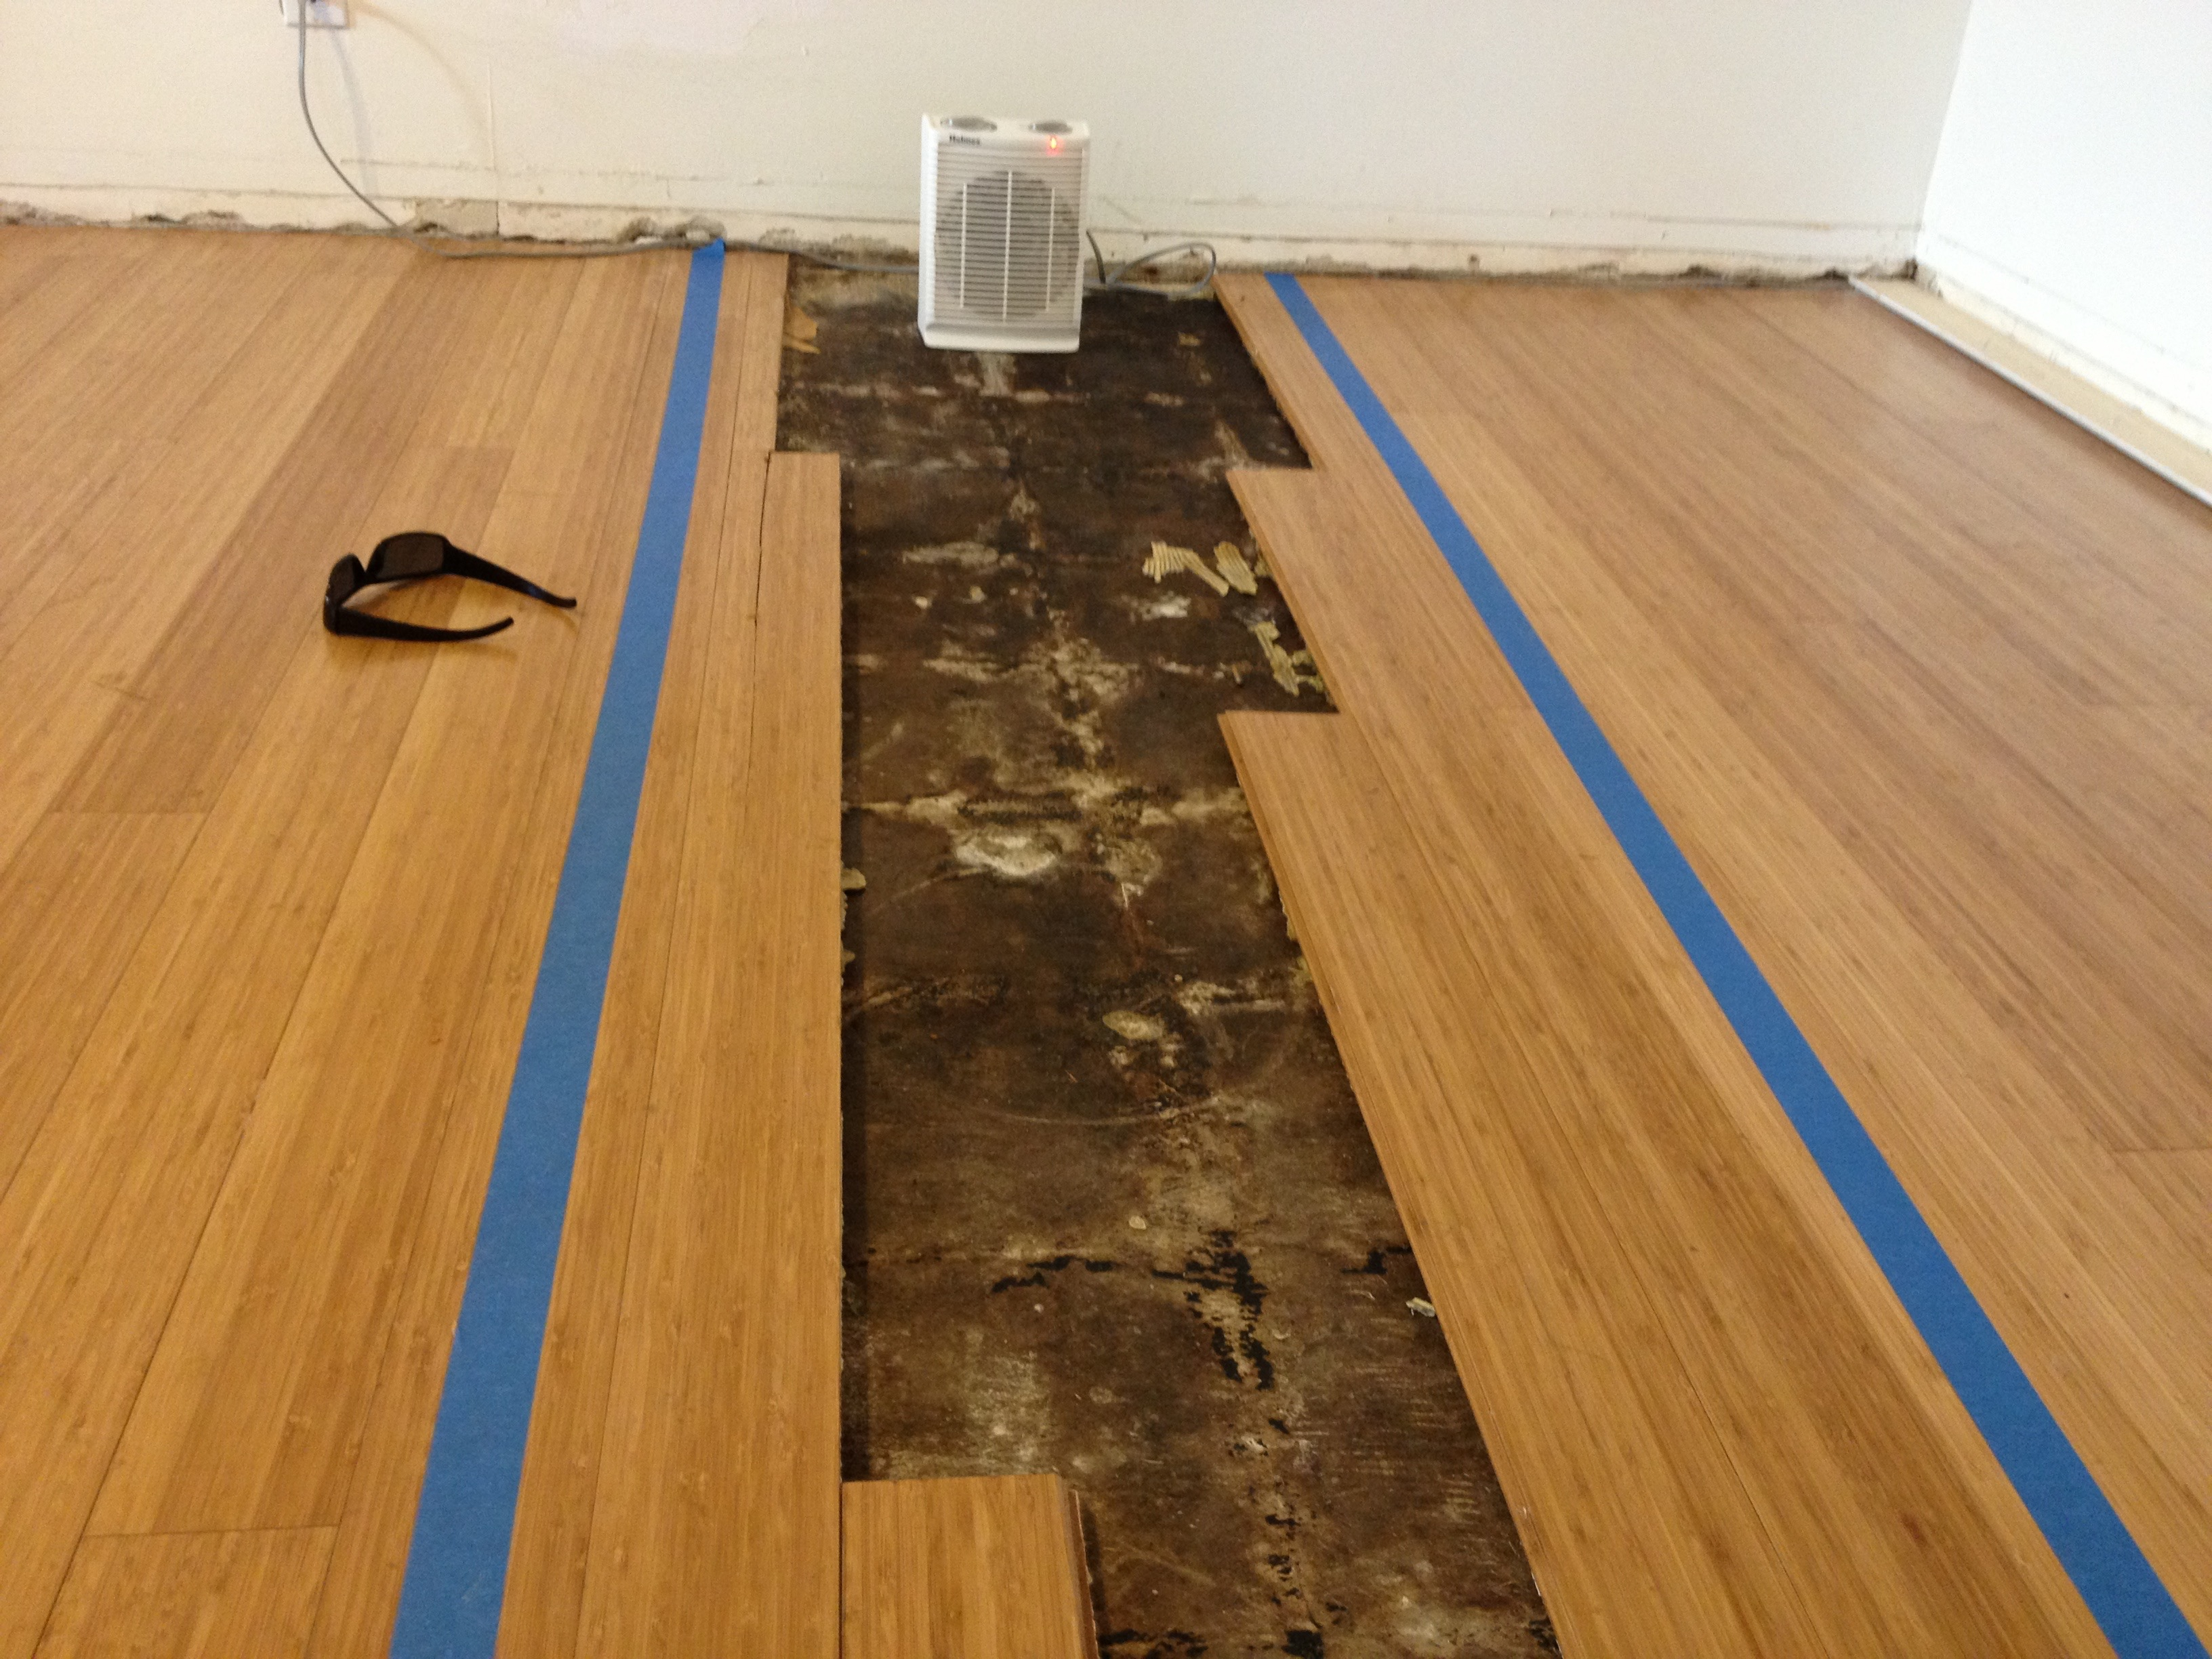 How to fix buckled hardwood floors beste awesome inspiration for How to fix buckling hardwood floors